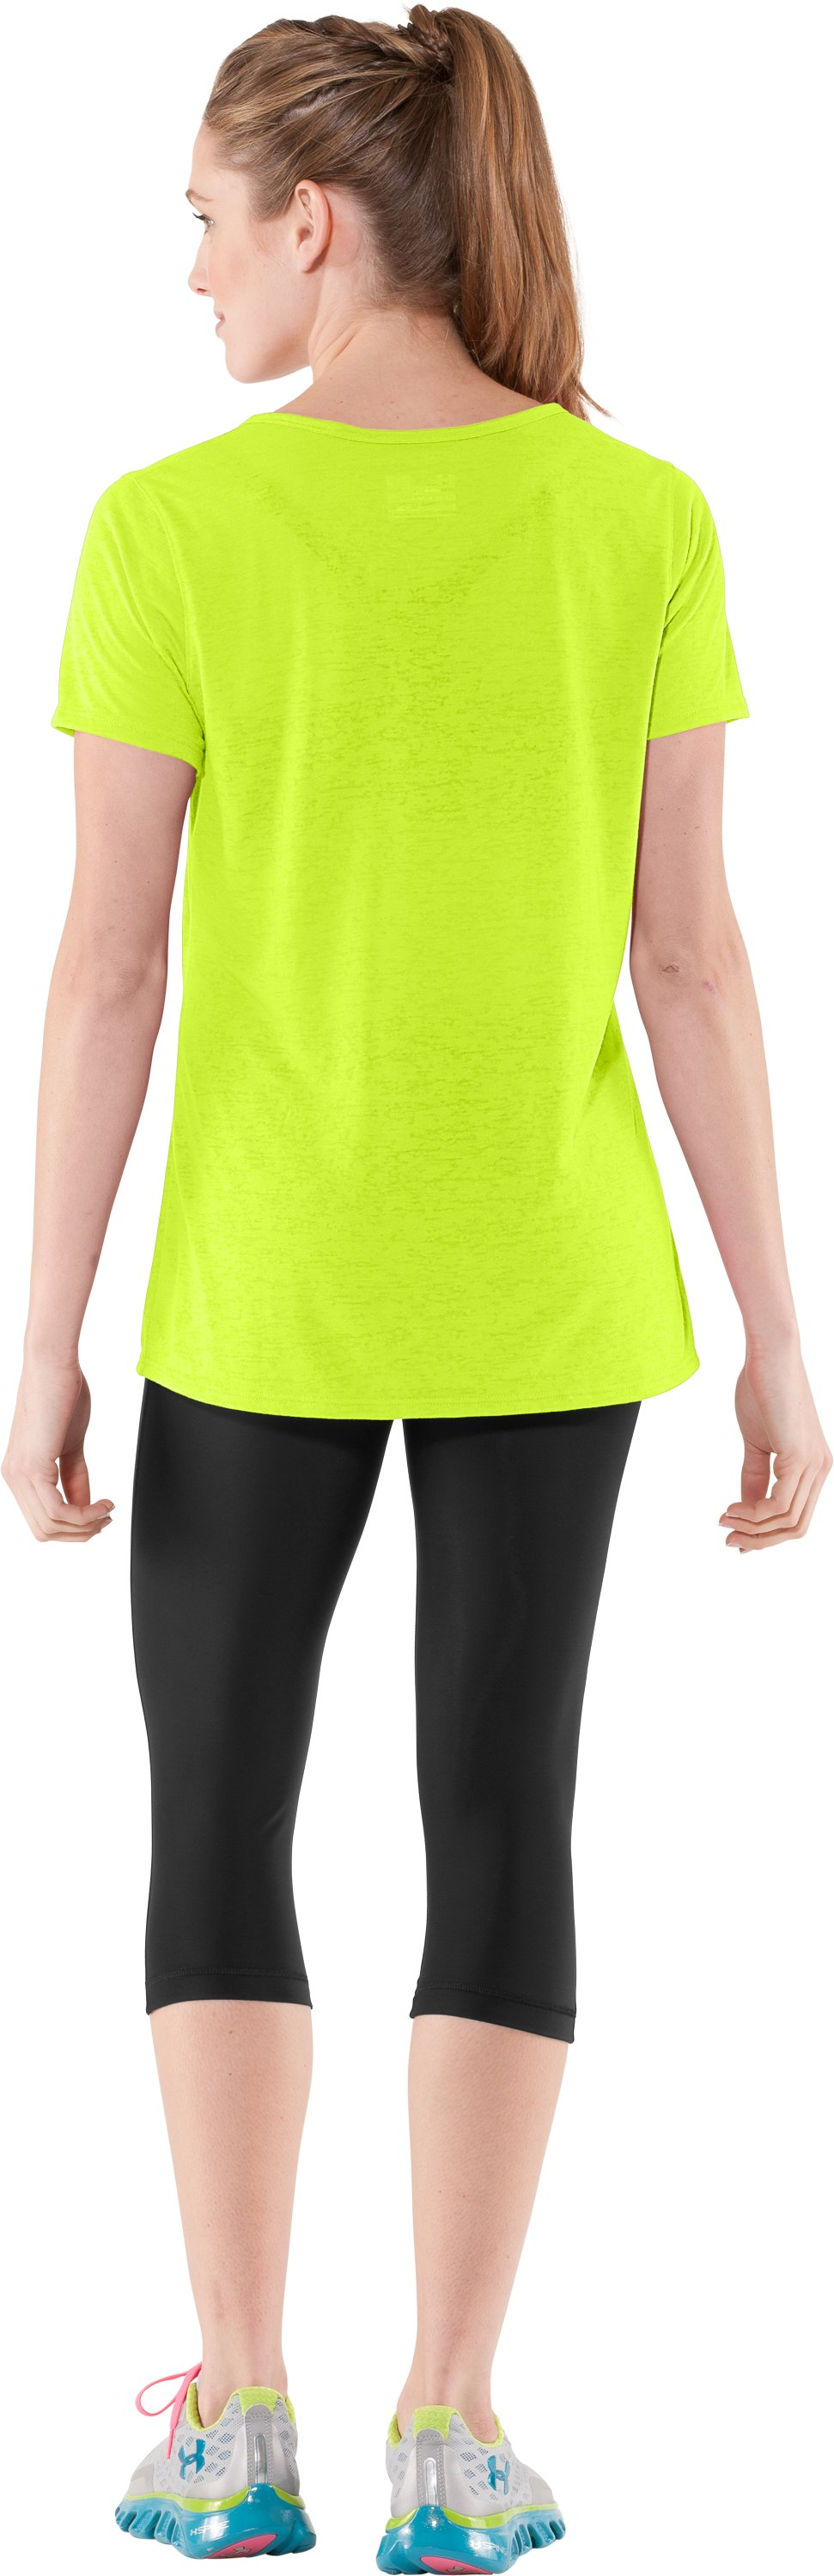 Women's Achieve Burnout T-Shirt, High-Vis Yellow, Back